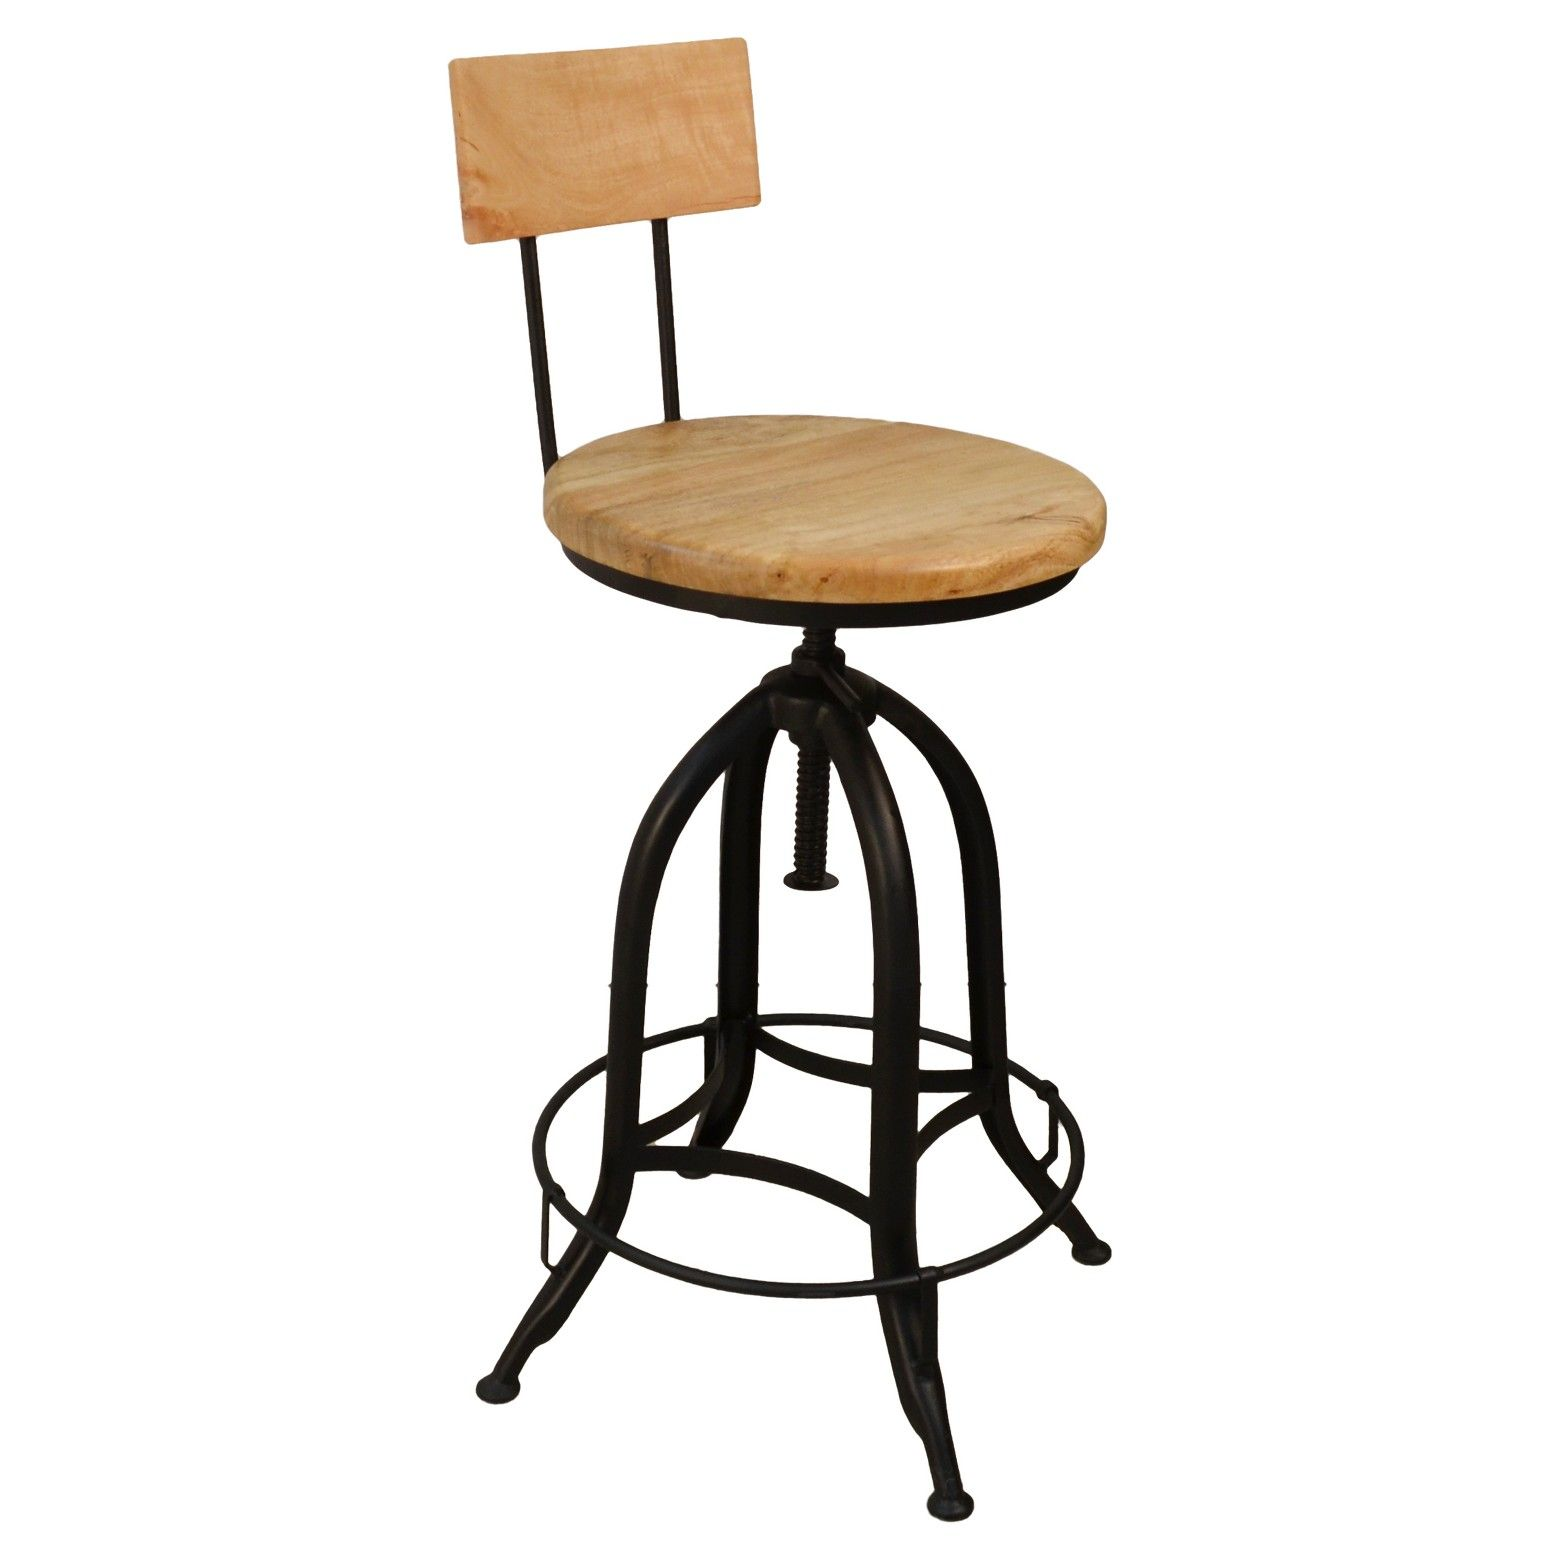 The Wren Adjustable Stool With Back Rest Has A Sleek And Elegant